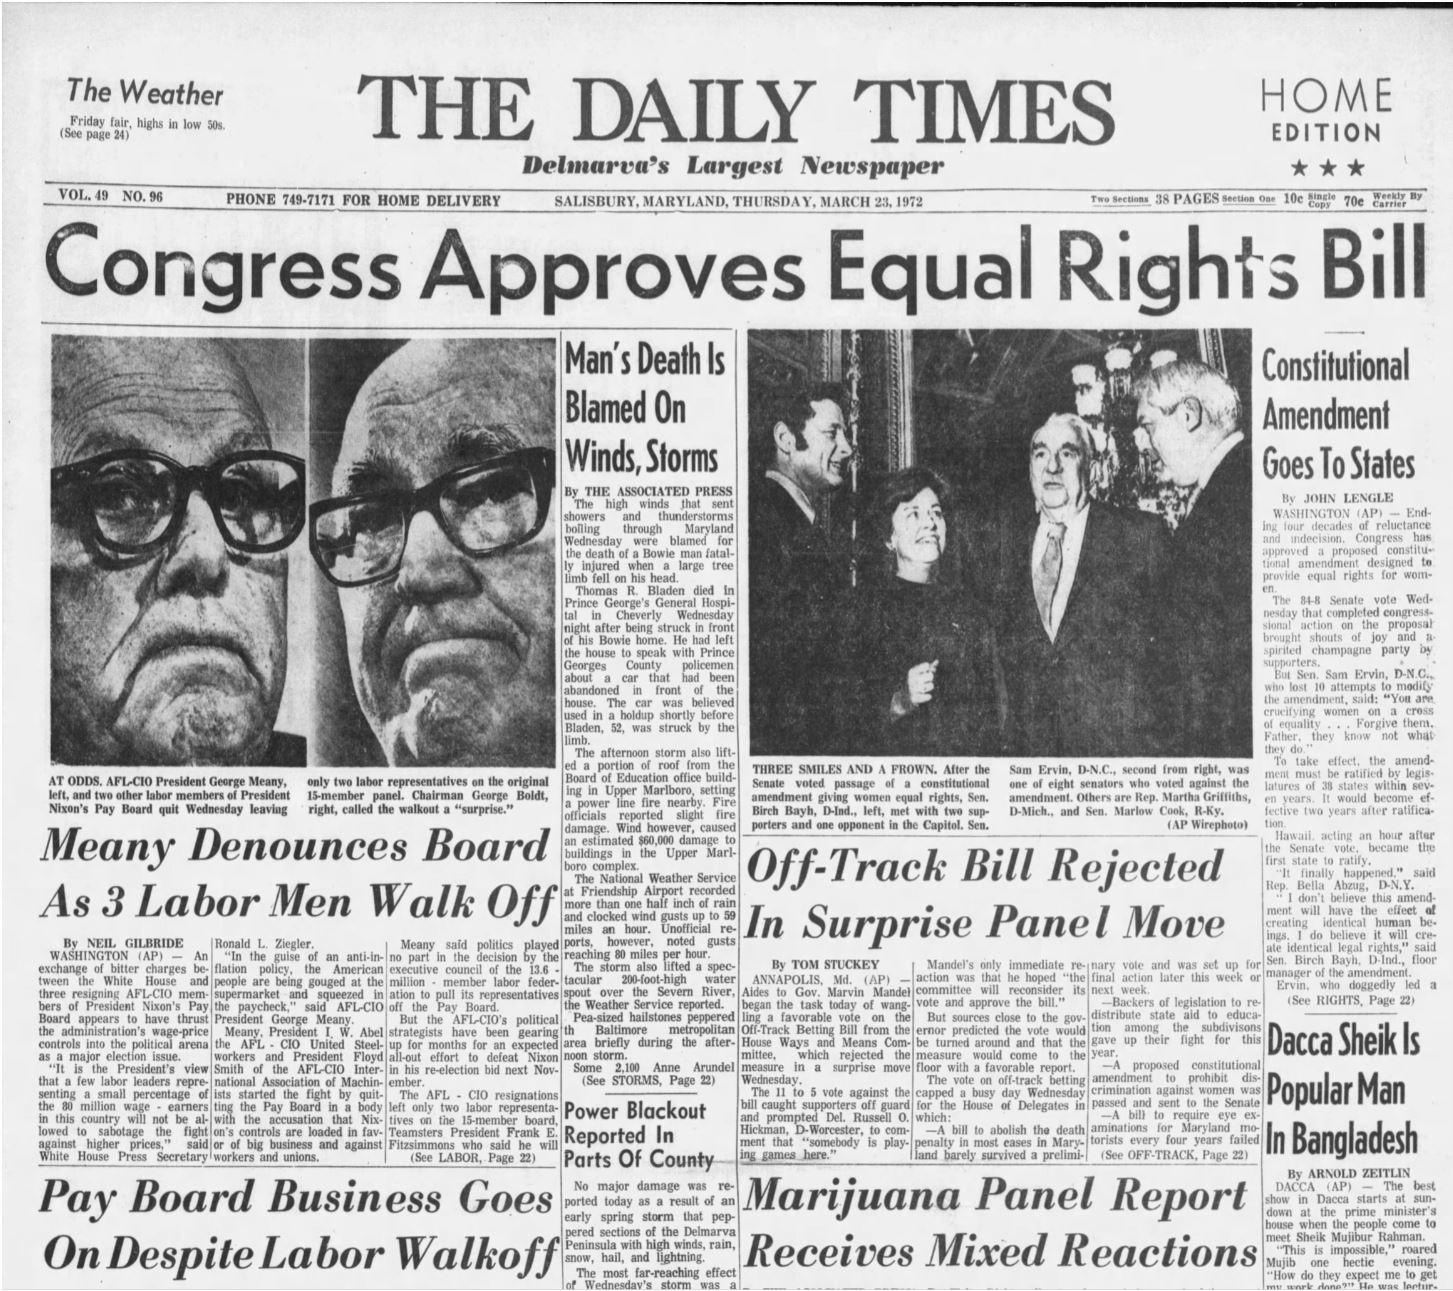 U.S. Senate passes the Equal Rights Amendment in 1972